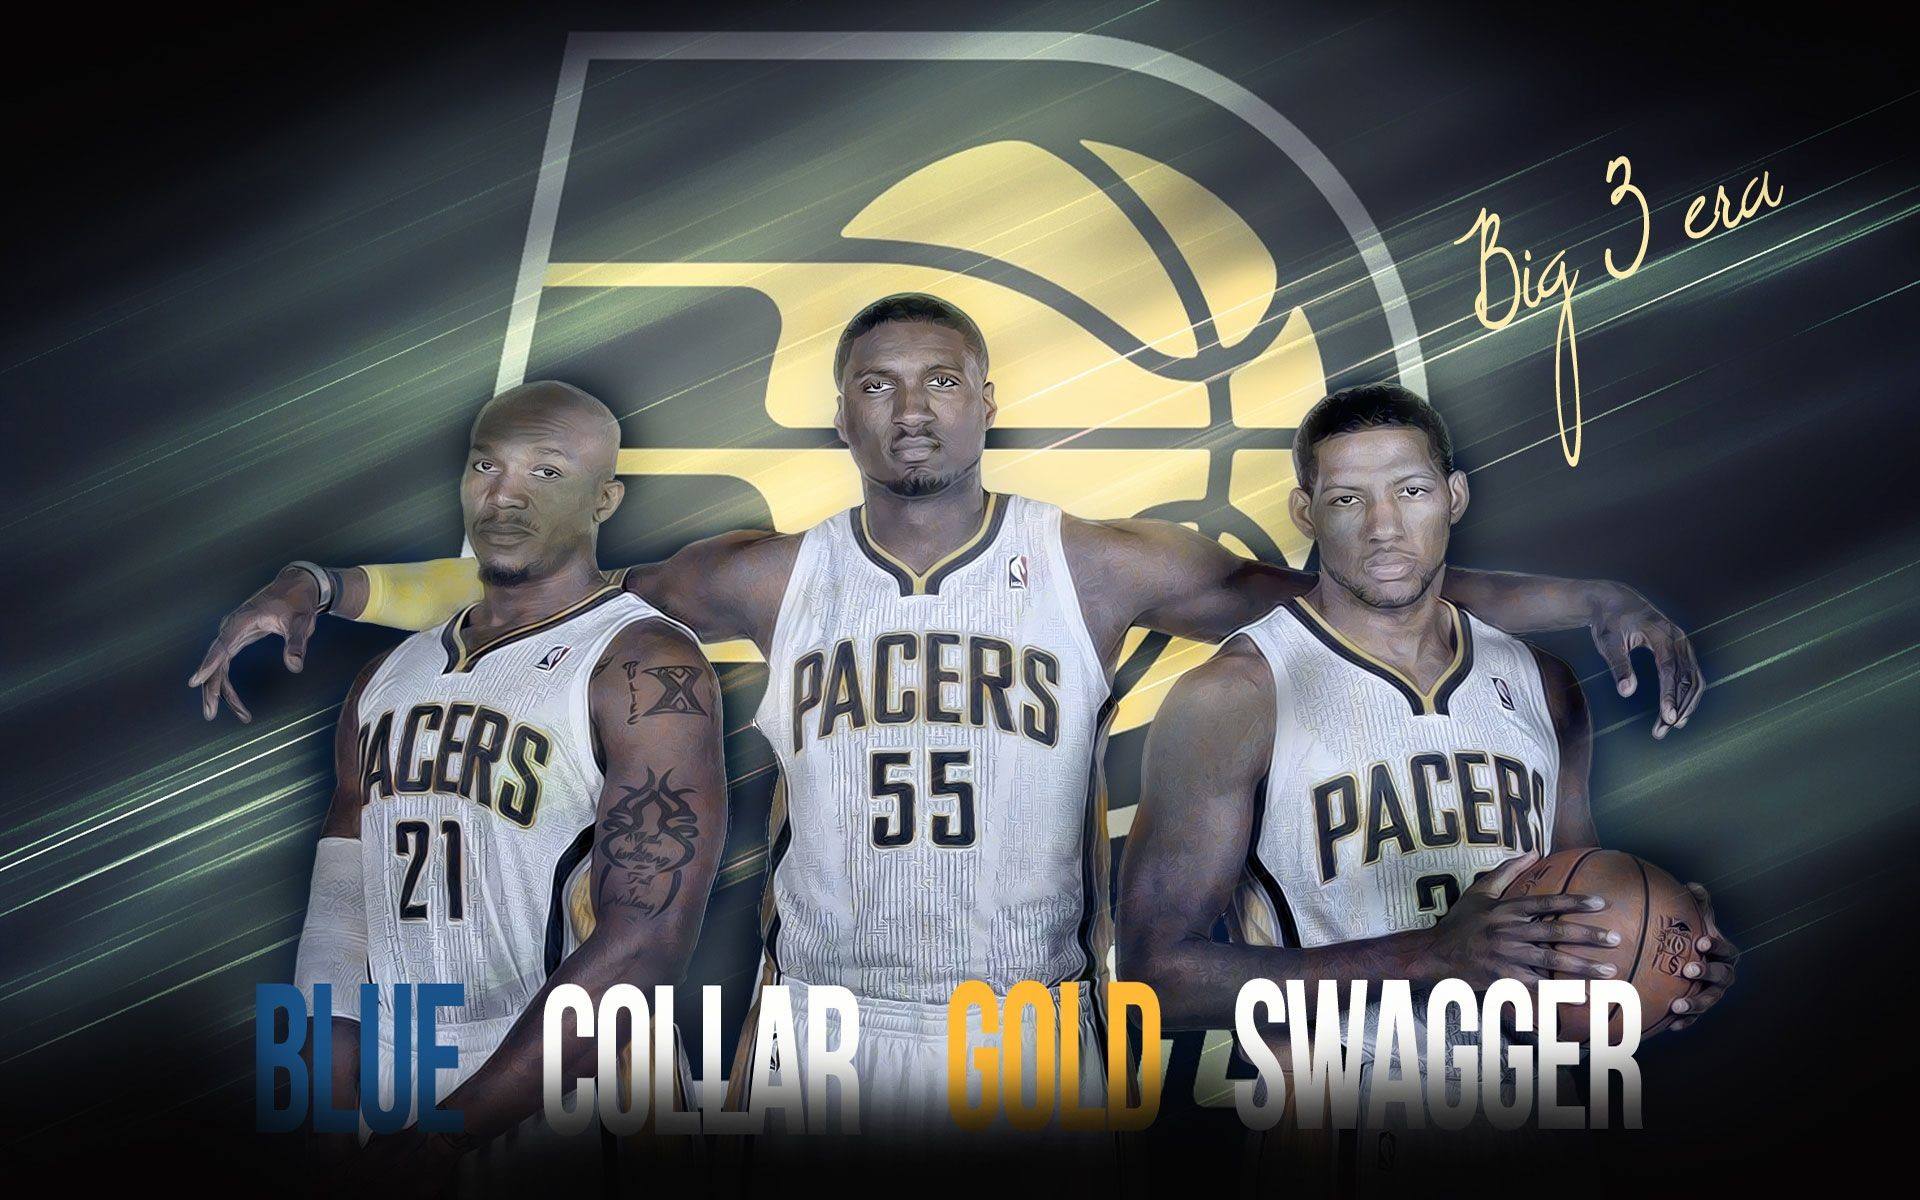 1920x1200 Indiana Pacers | Blue Collar Gold Swagger  Wallpaper, Wallpaper  Pc, Nba Updates,